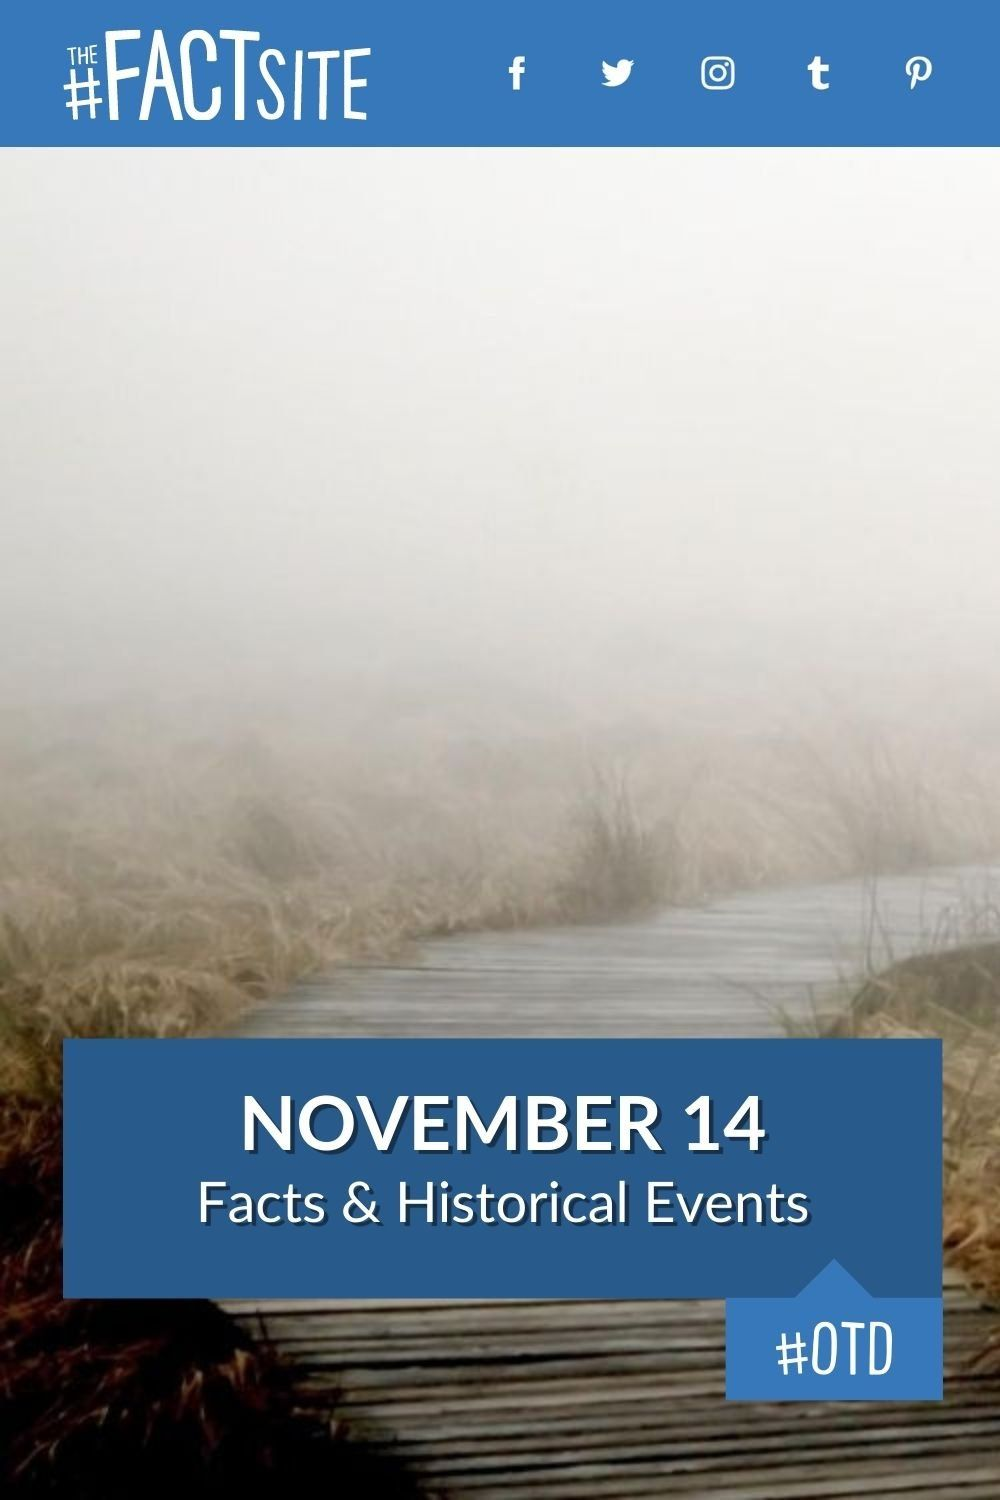 Facts & Historic Events That Happened on November 14